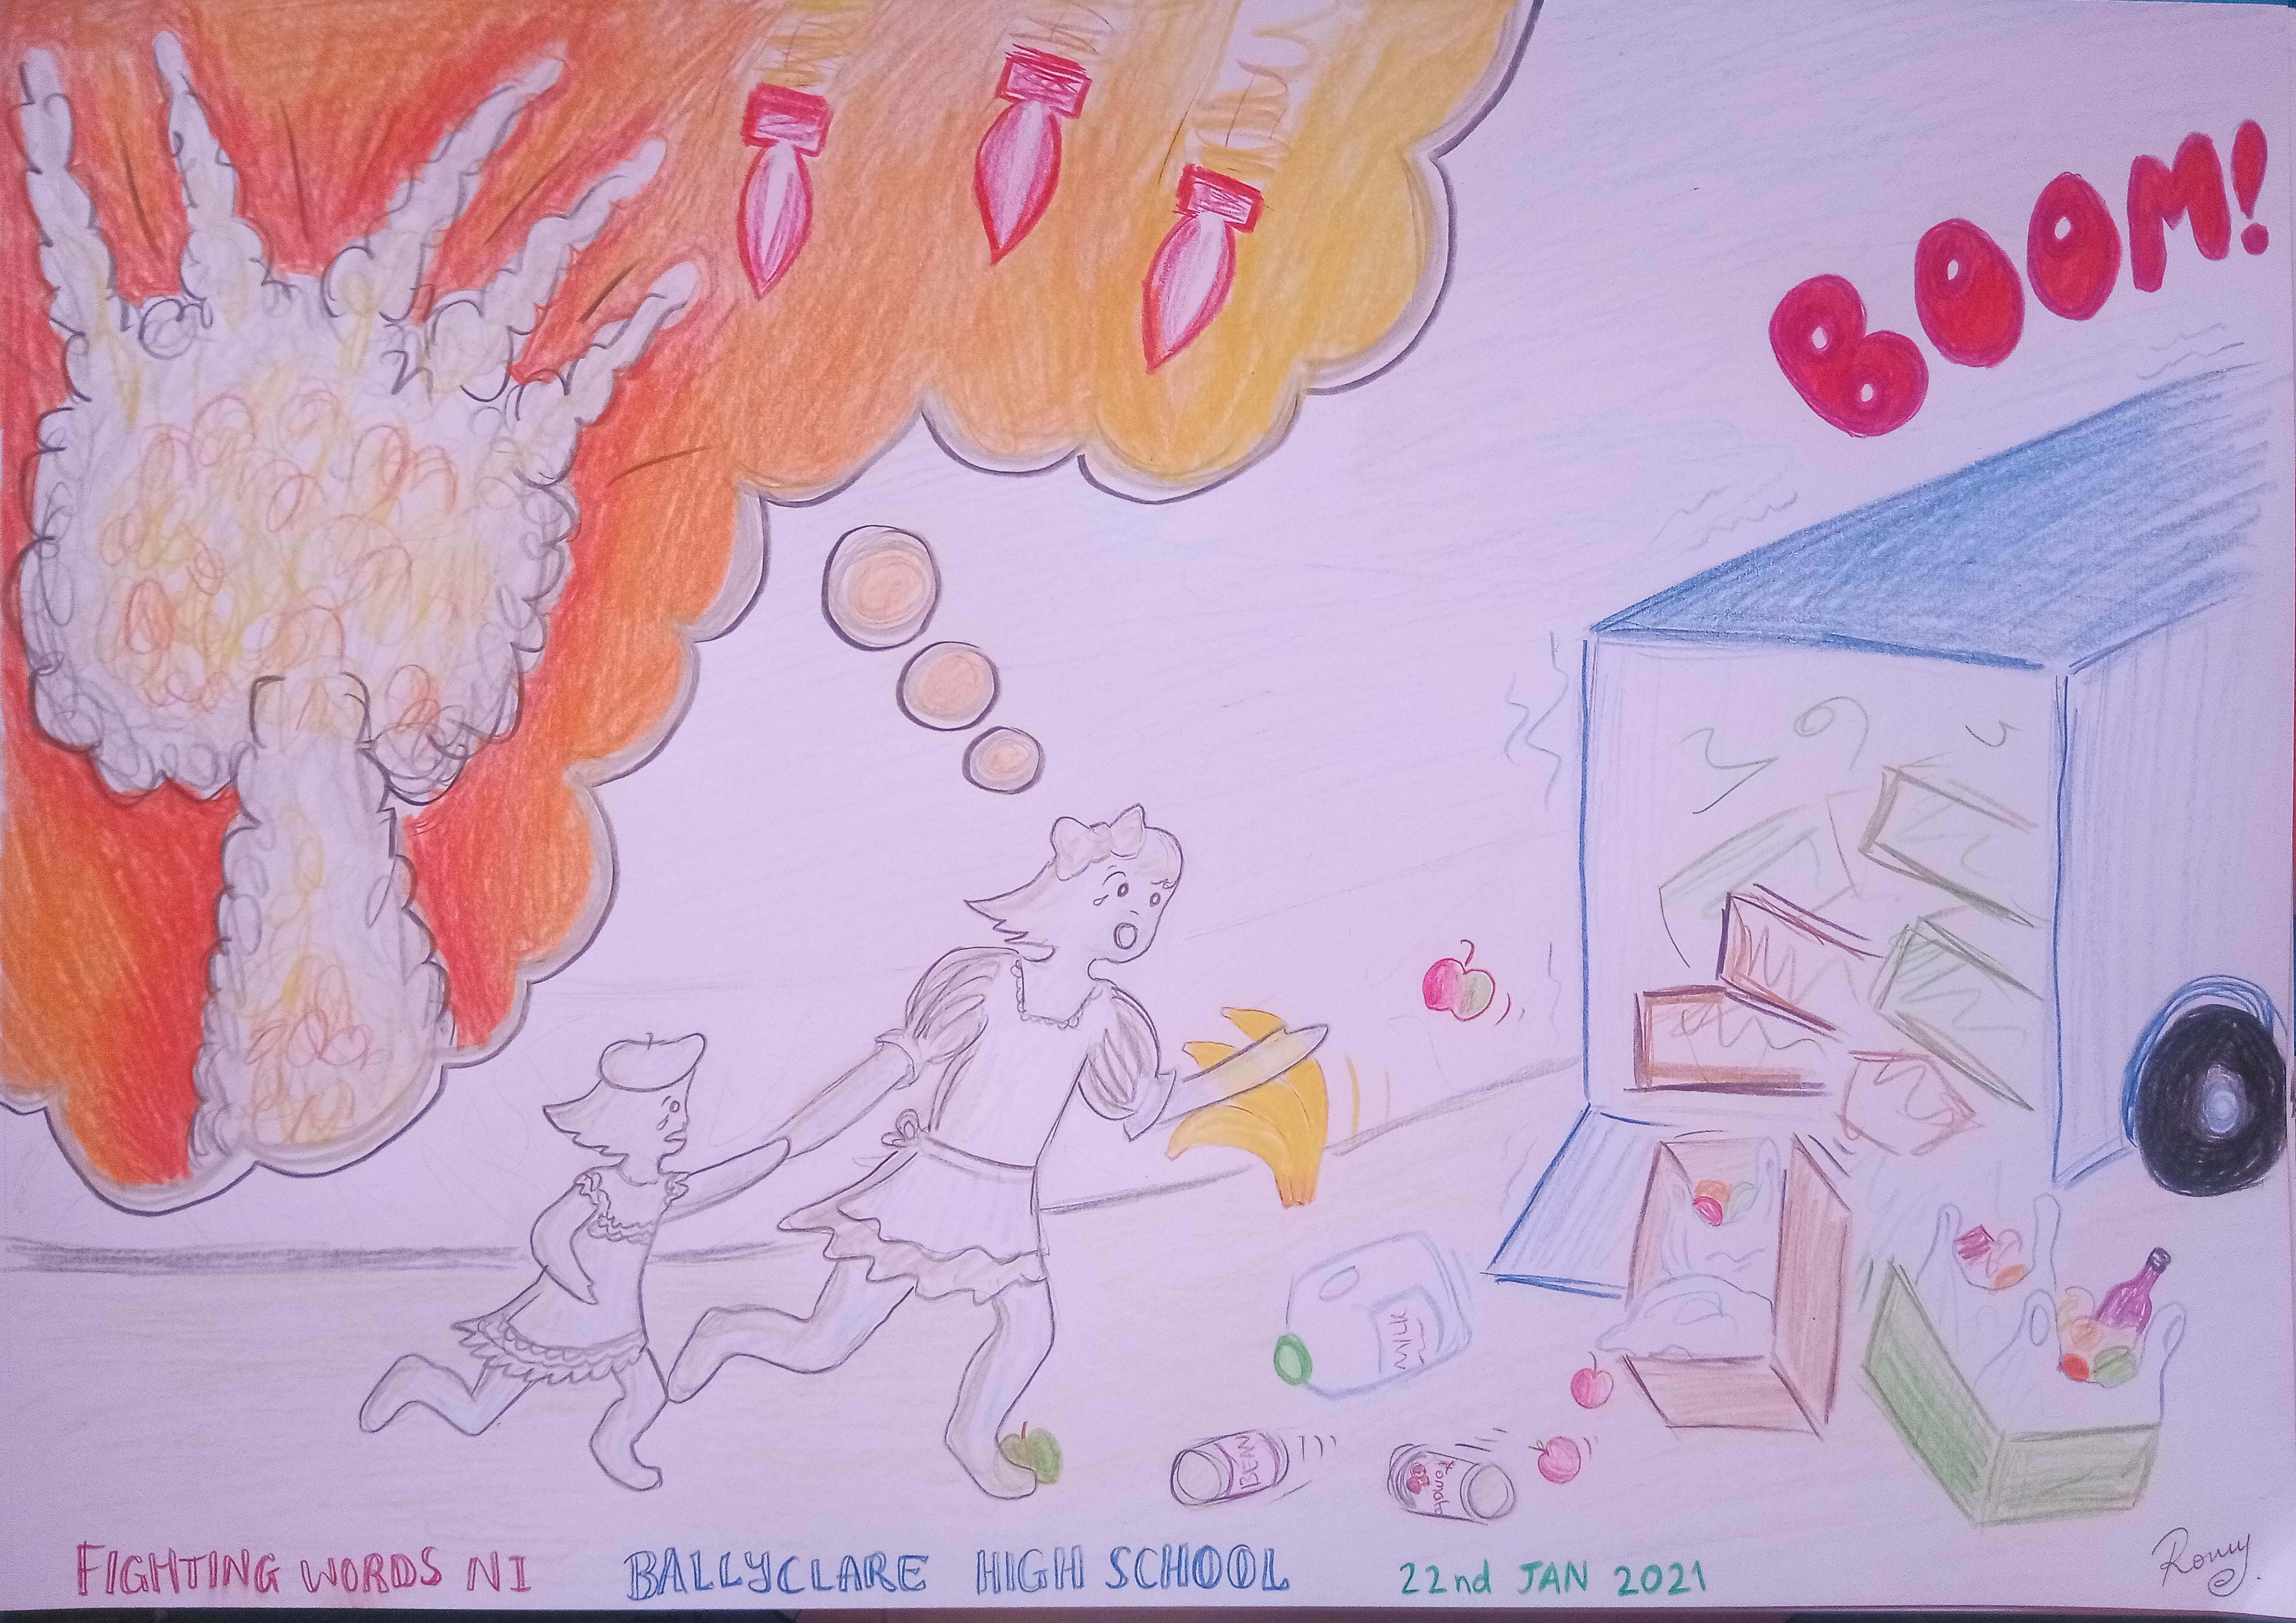 An Illustration for The Ghost in World War 1, written by Ballyclare High School, Year 9